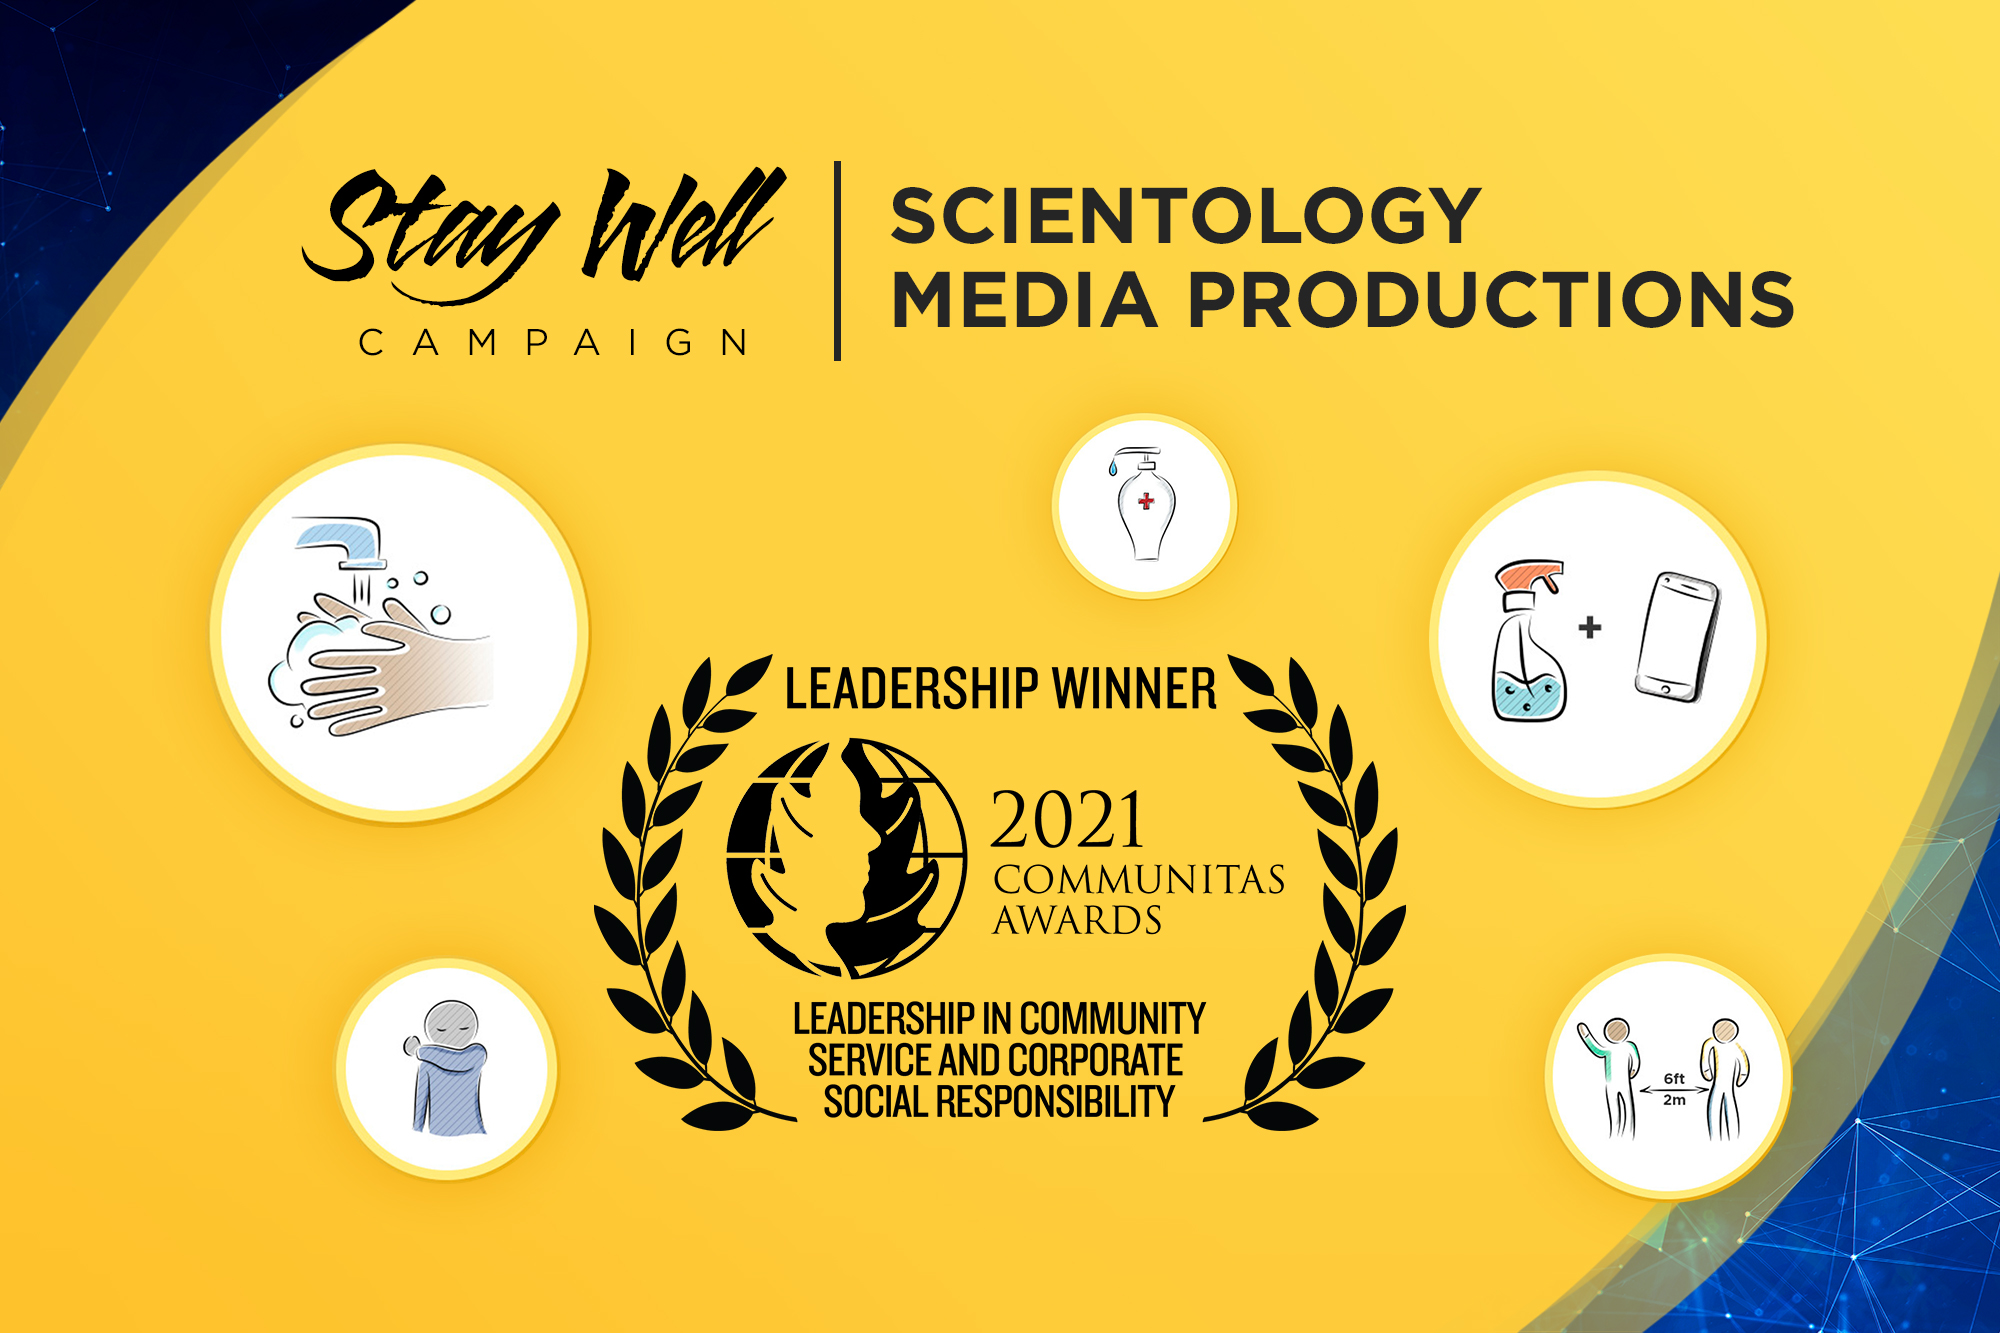 Scientology Media Productions honored with the Communitas Award